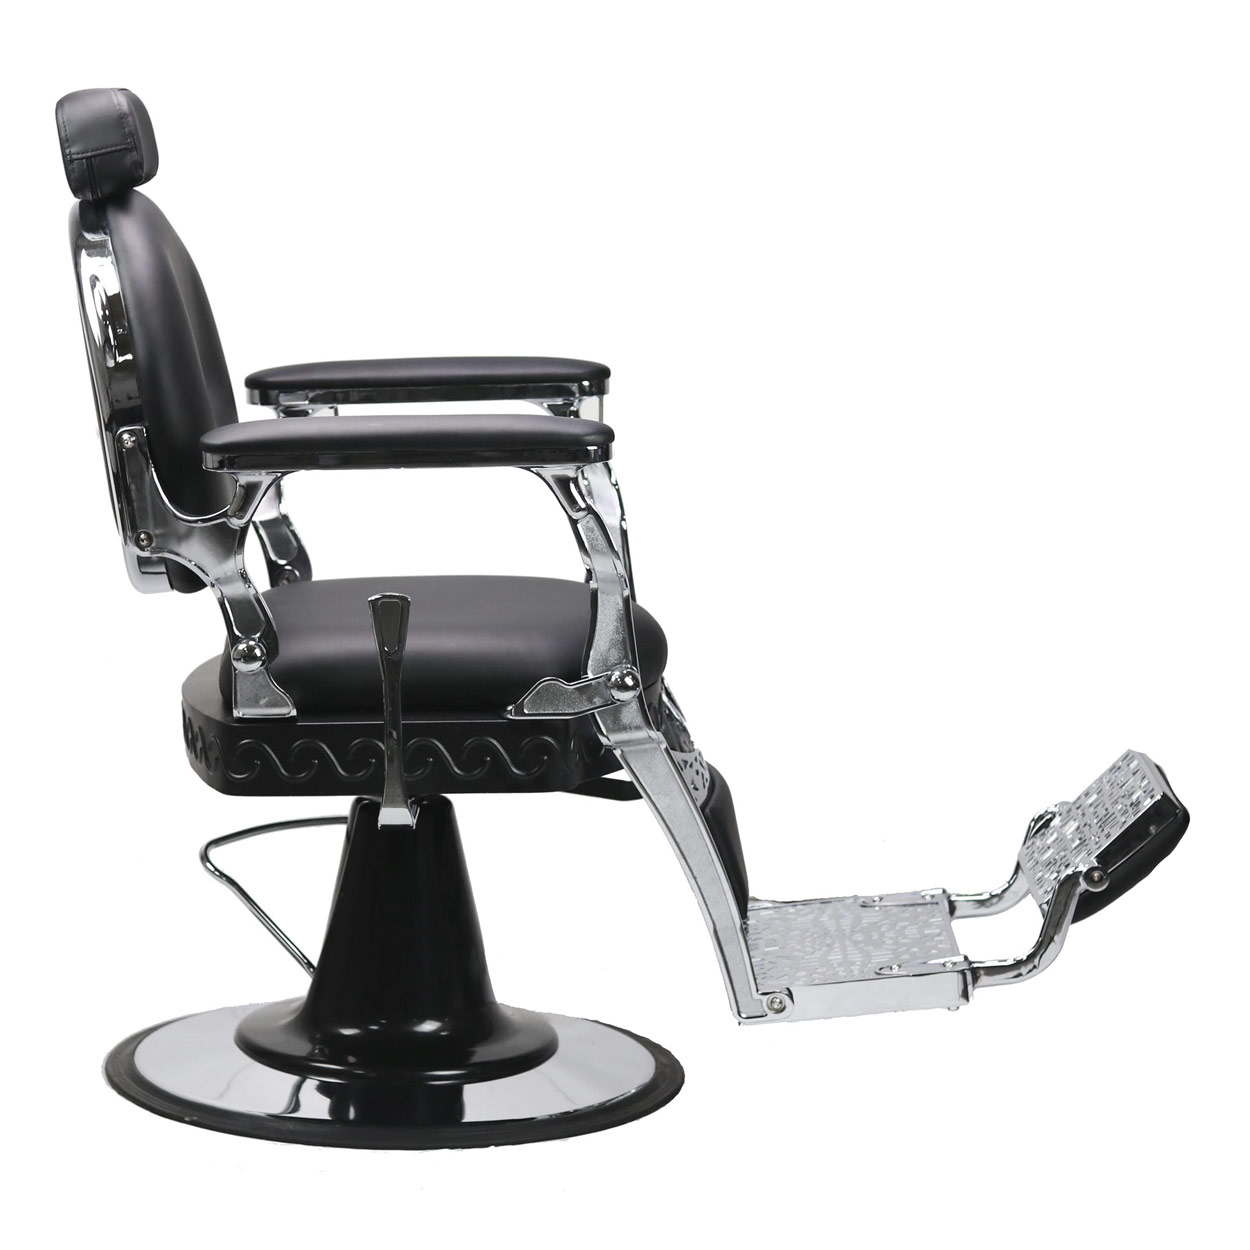 Sutton Vintage Barber Chair alternative product image 4